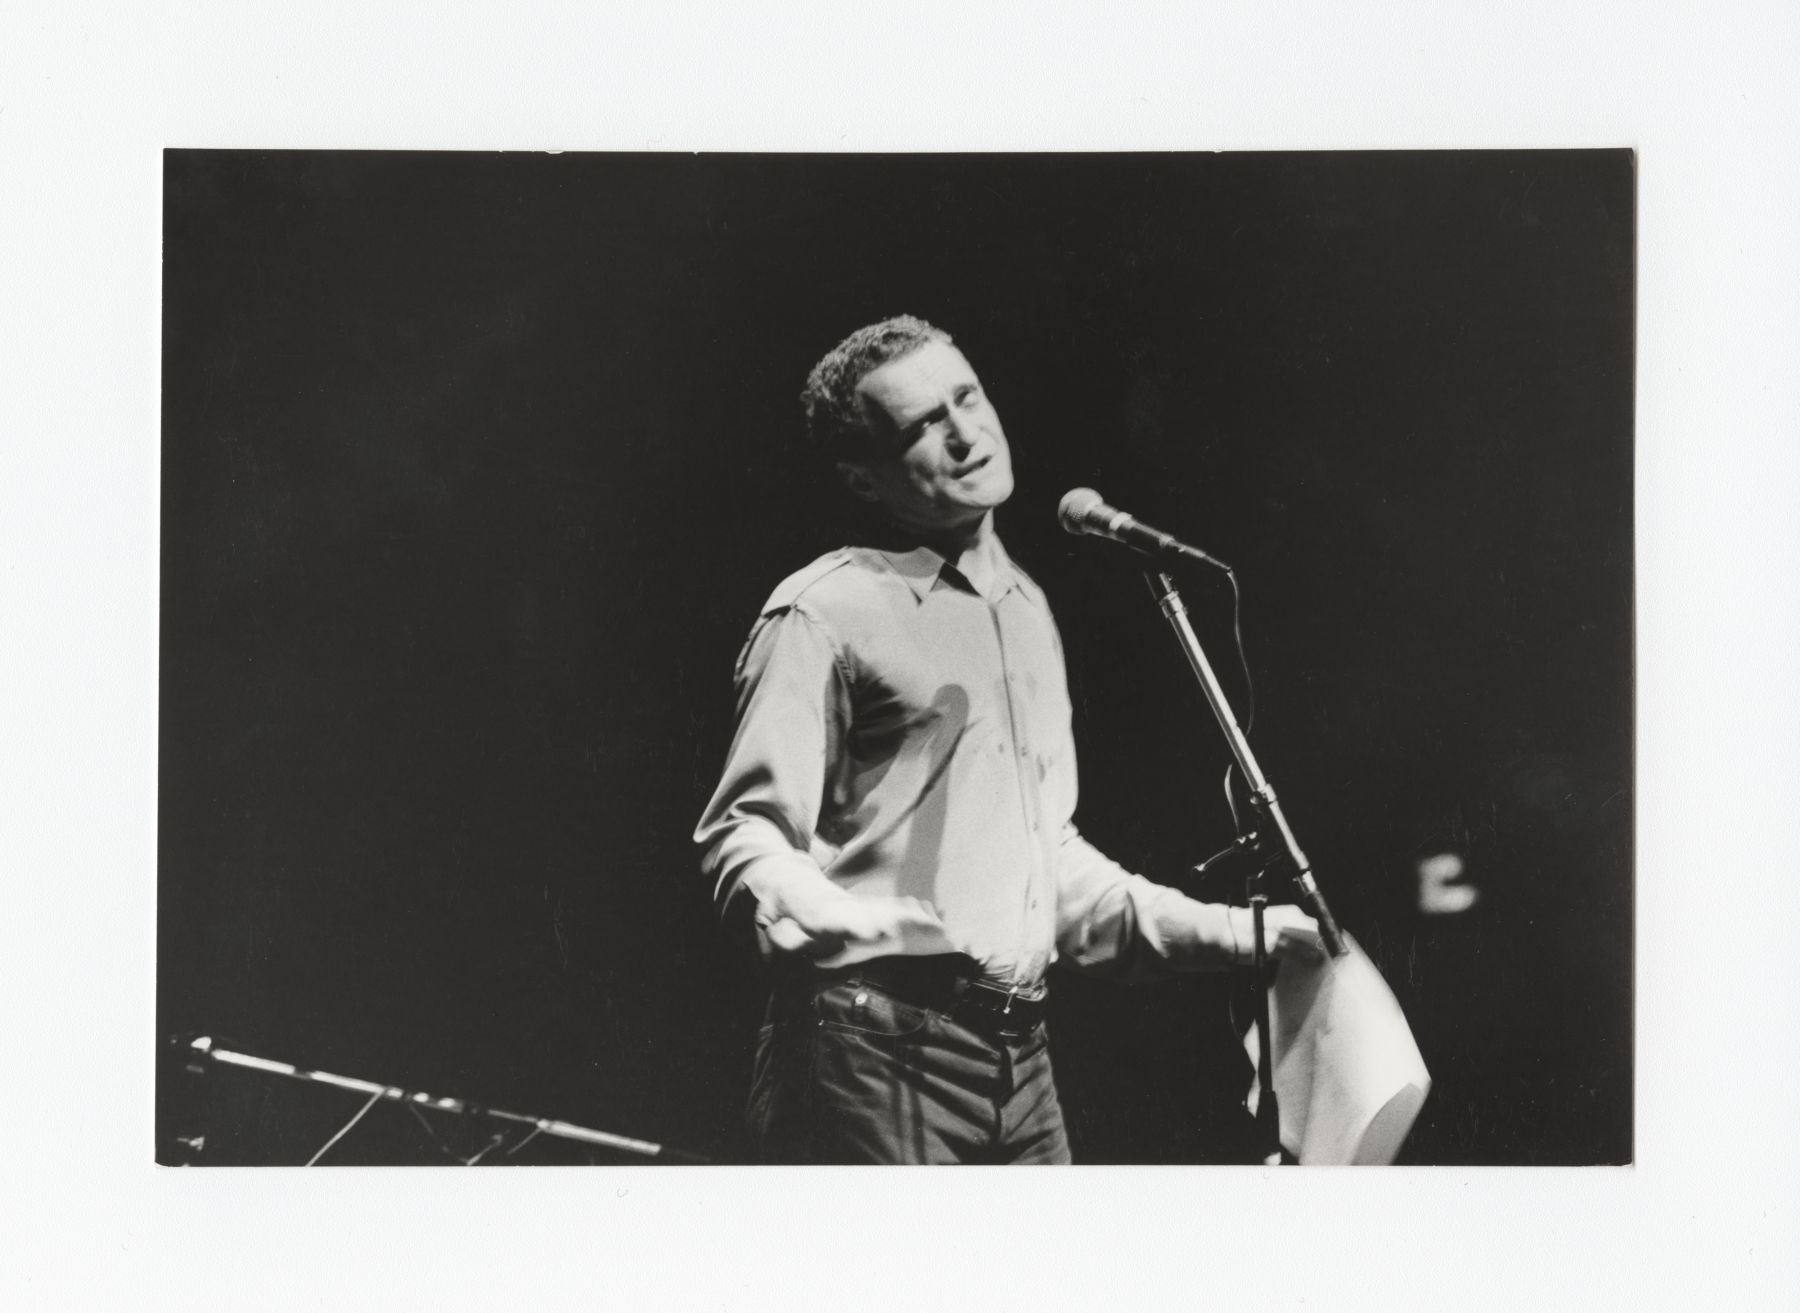 John Giorno performing at Centre Pompidou in Paris, June 10 1983